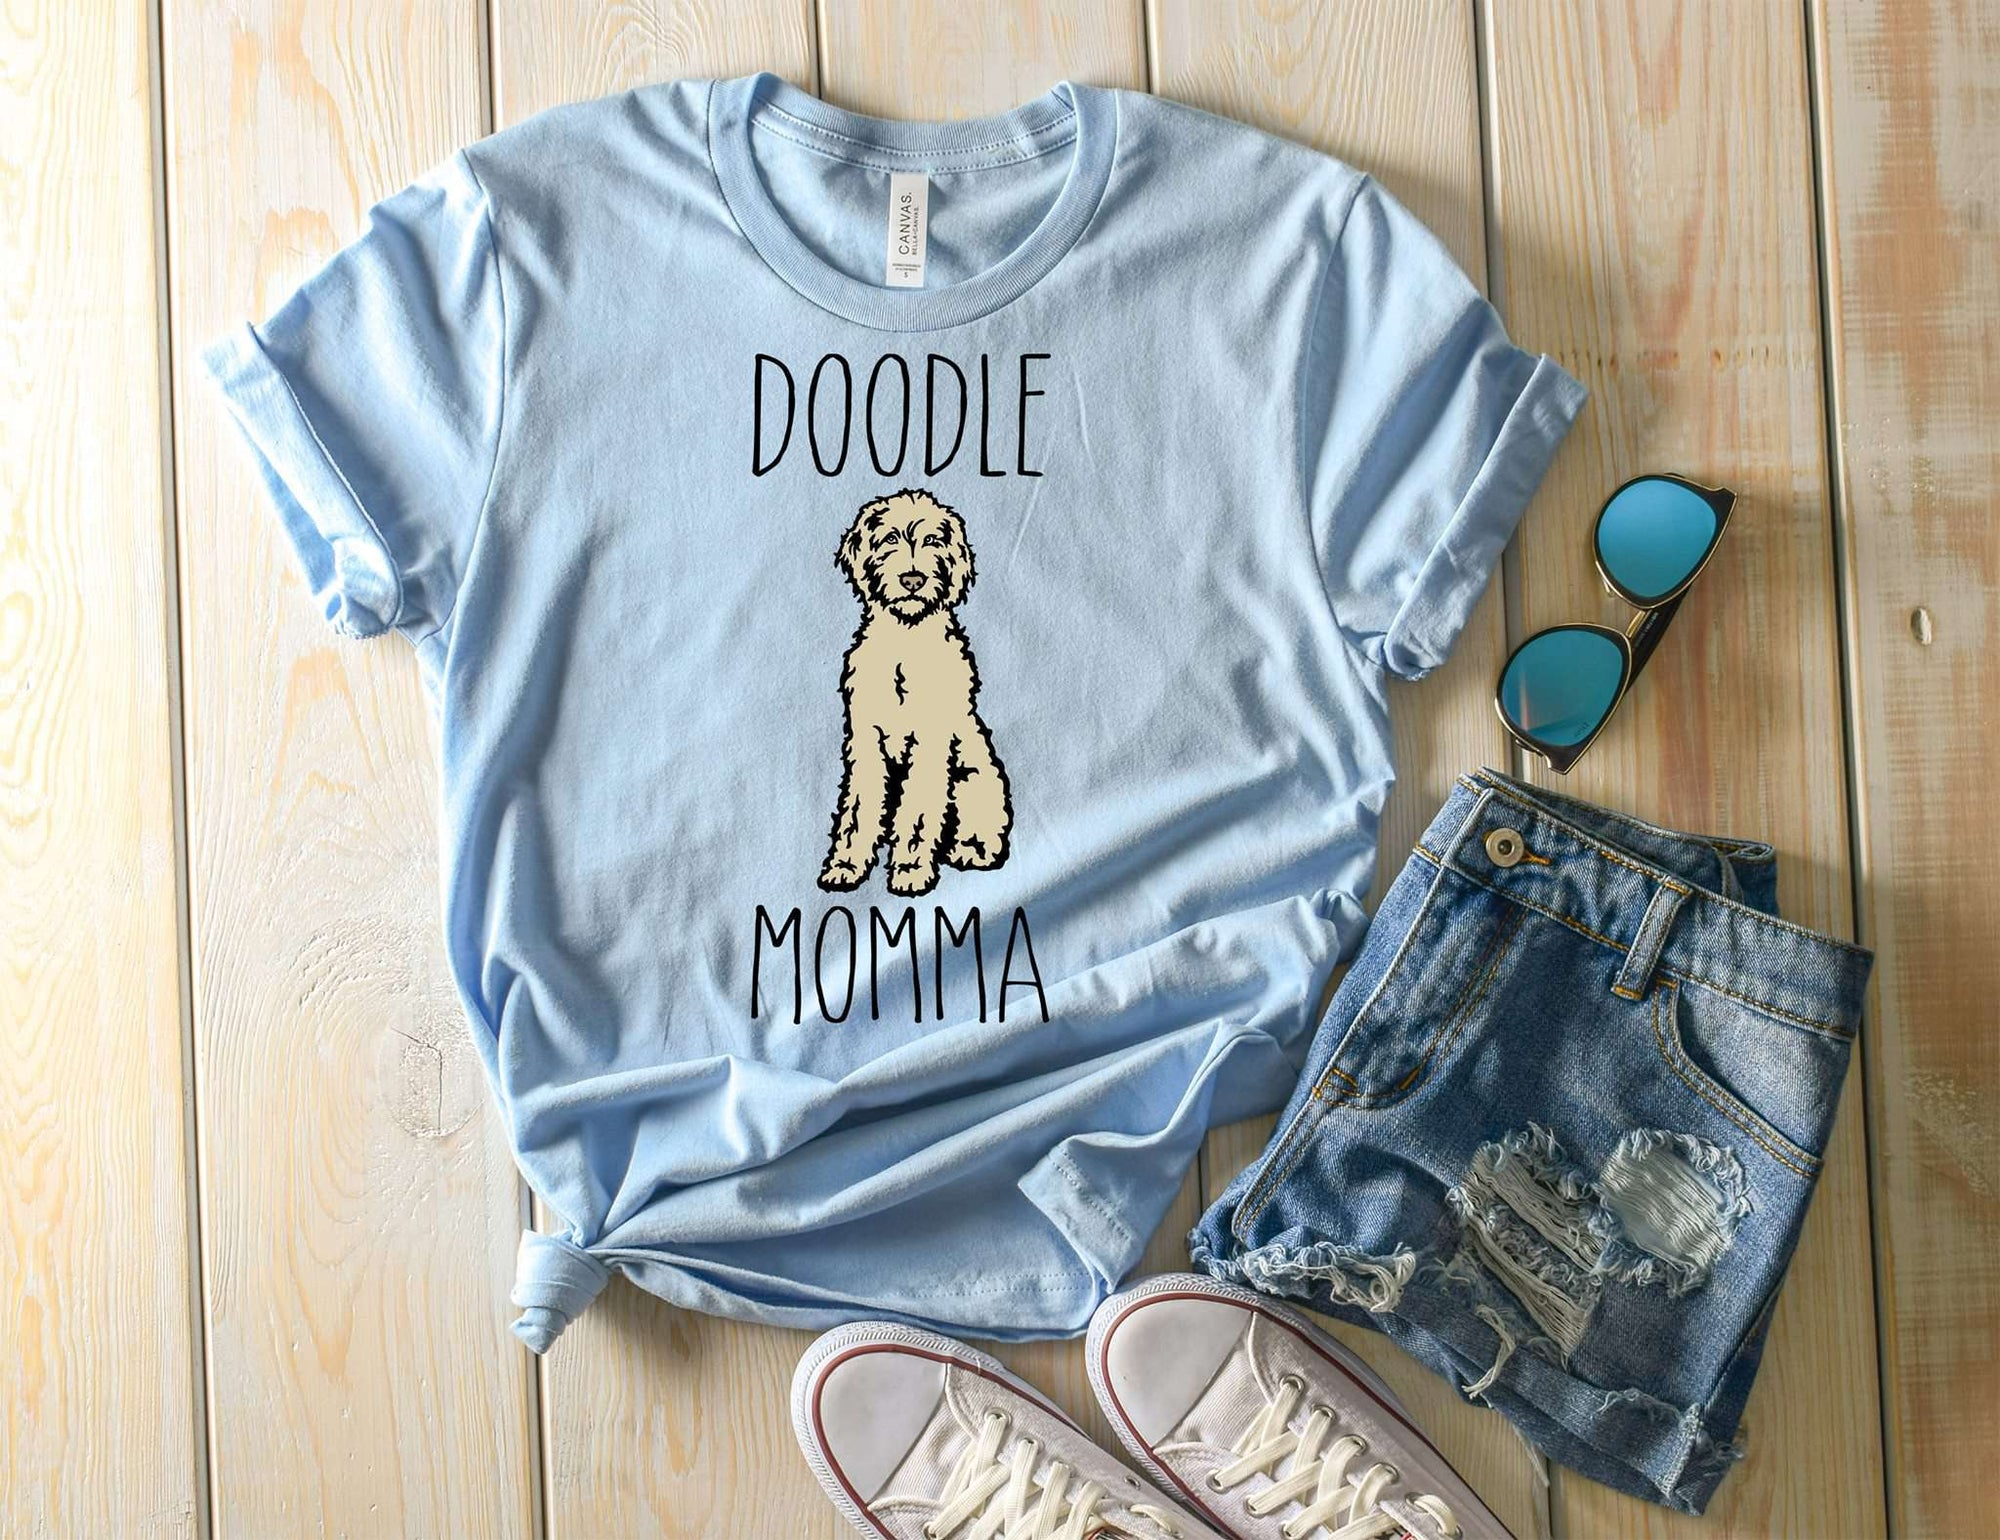 Doodle Momma Doodle Lover T-Shirt